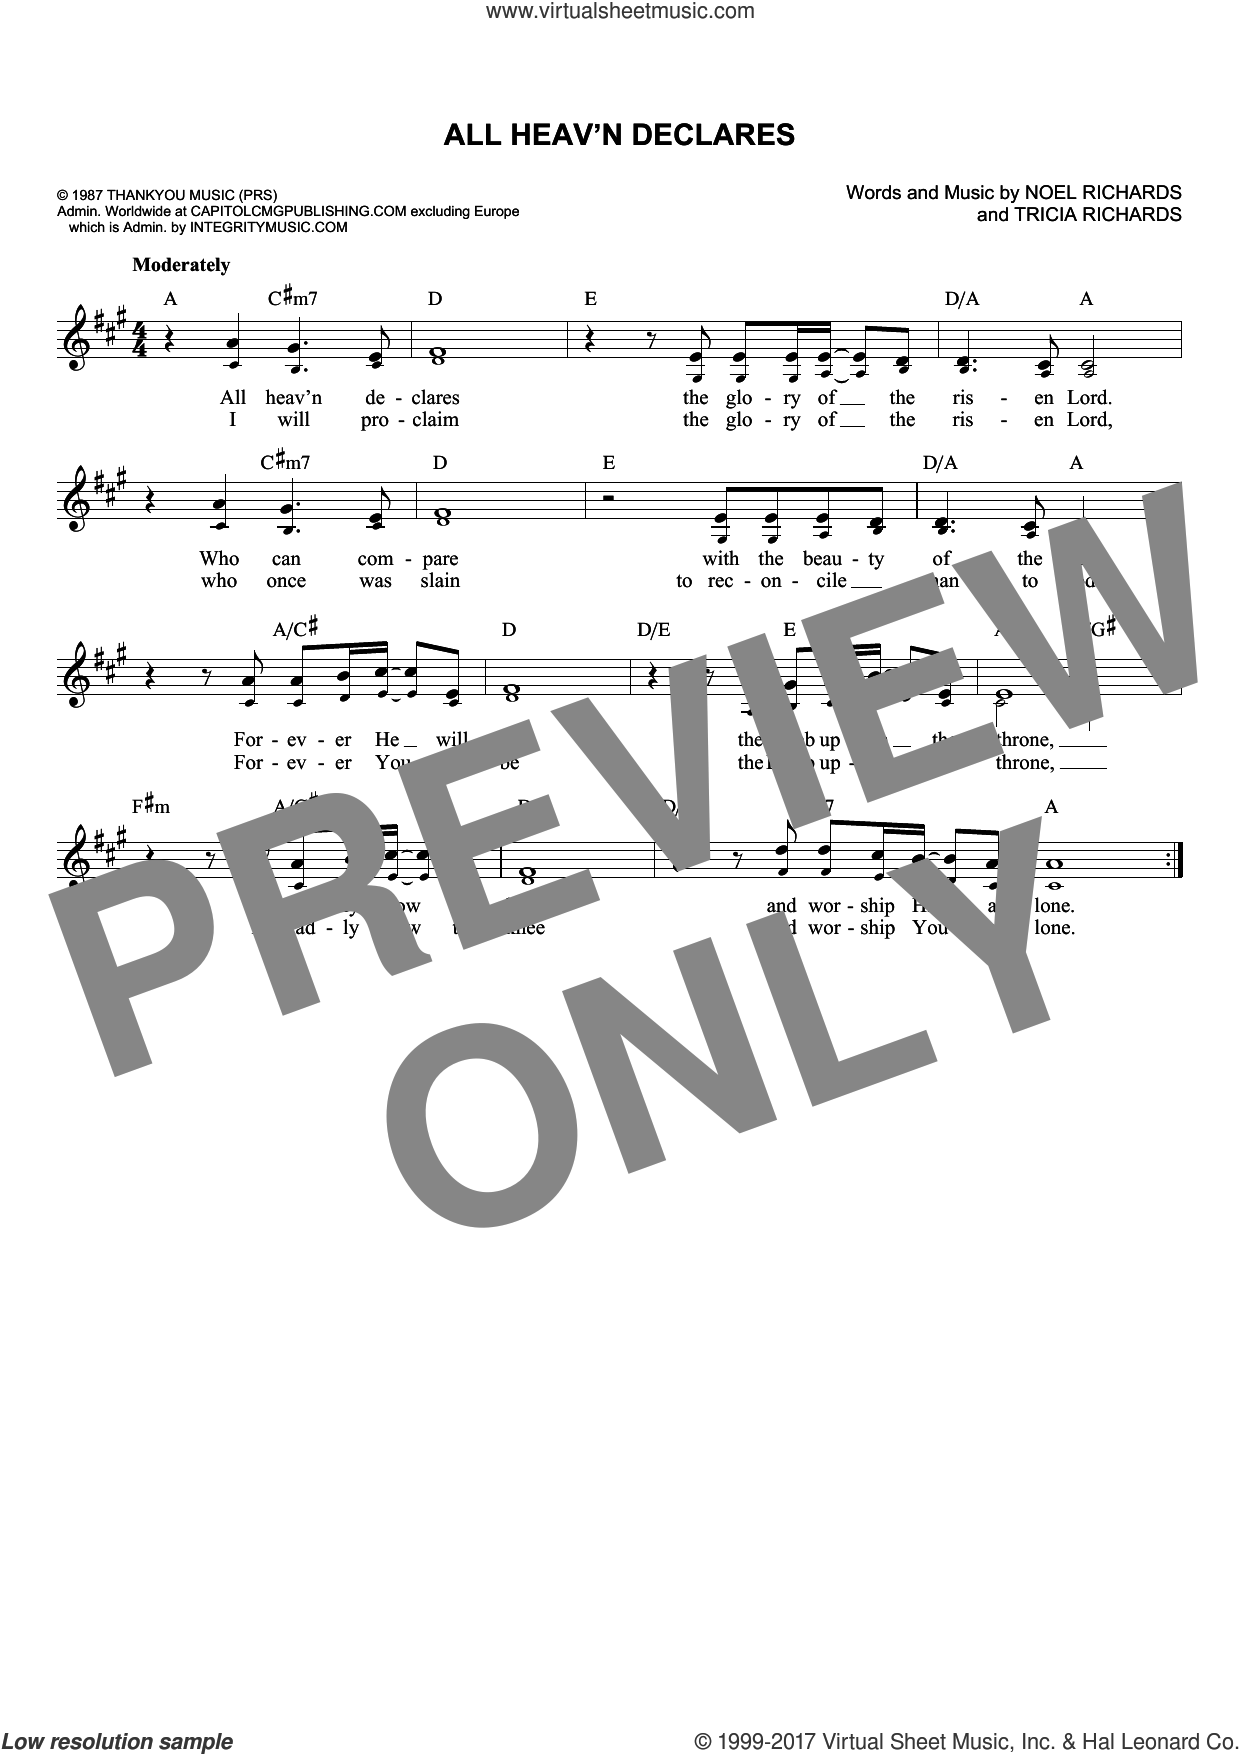 All Heav'n Declares sheet music for voice and other instruments (fake book) by Noel Richards and Tricia Richards, intermediate skill level